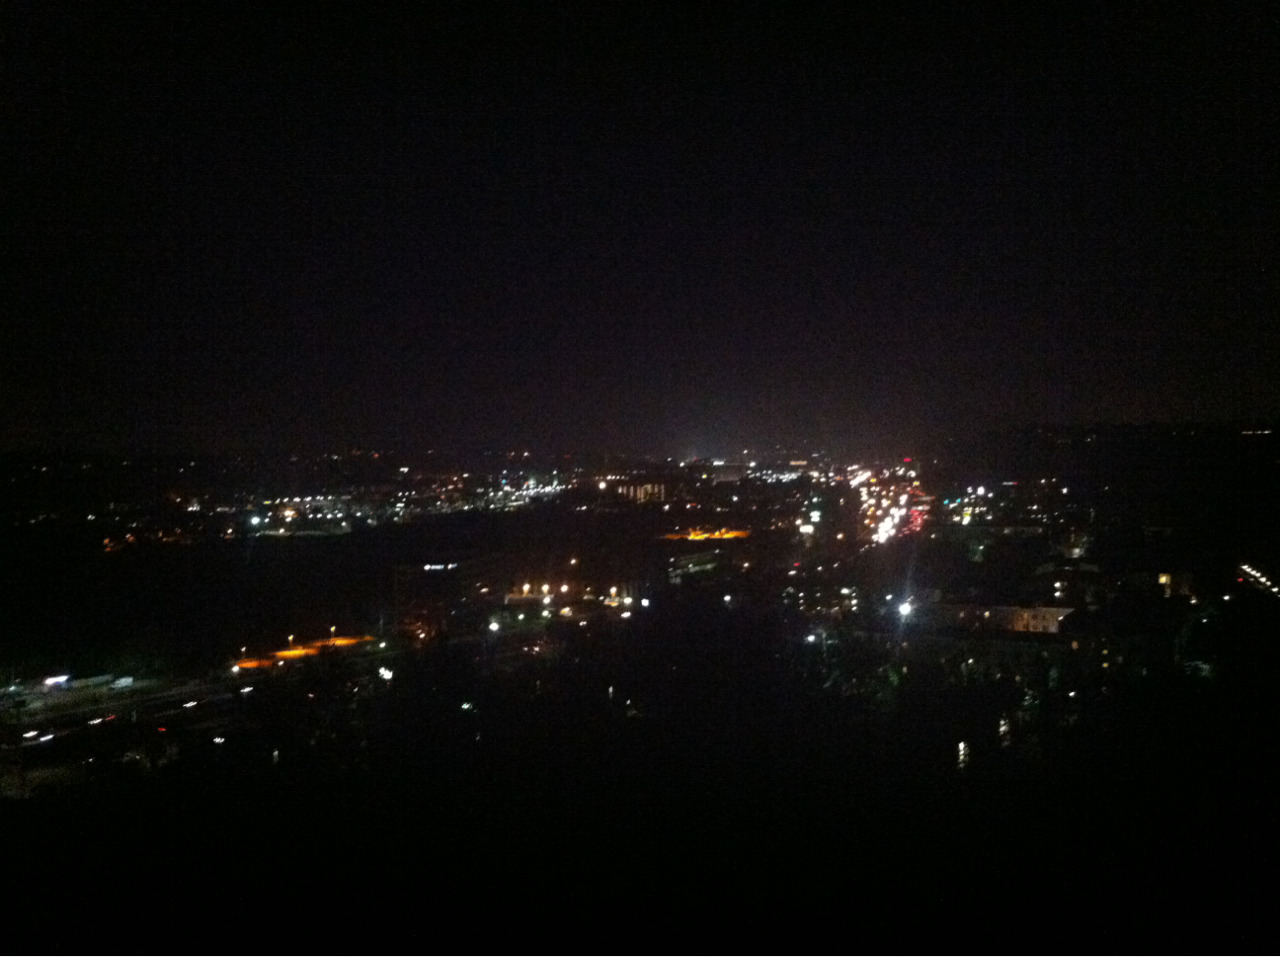 The night view from my friends grandmas house, San Diego and Nagasaki look a lot alike from above!